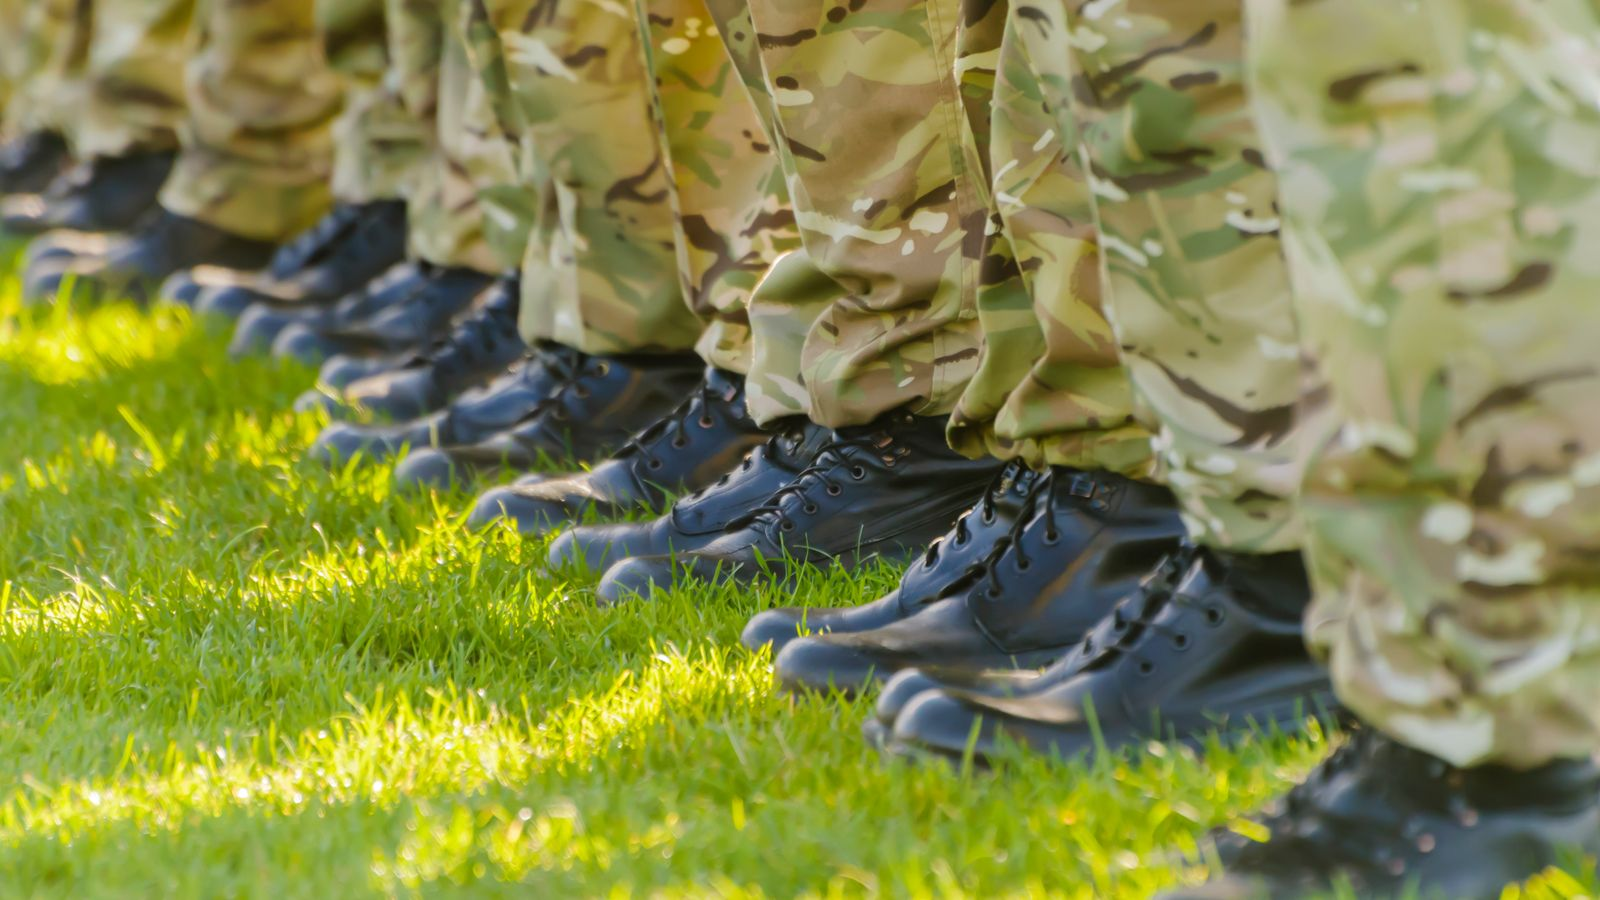 Soldier dies during training exercise on Salisbury Plain in Wiltshire